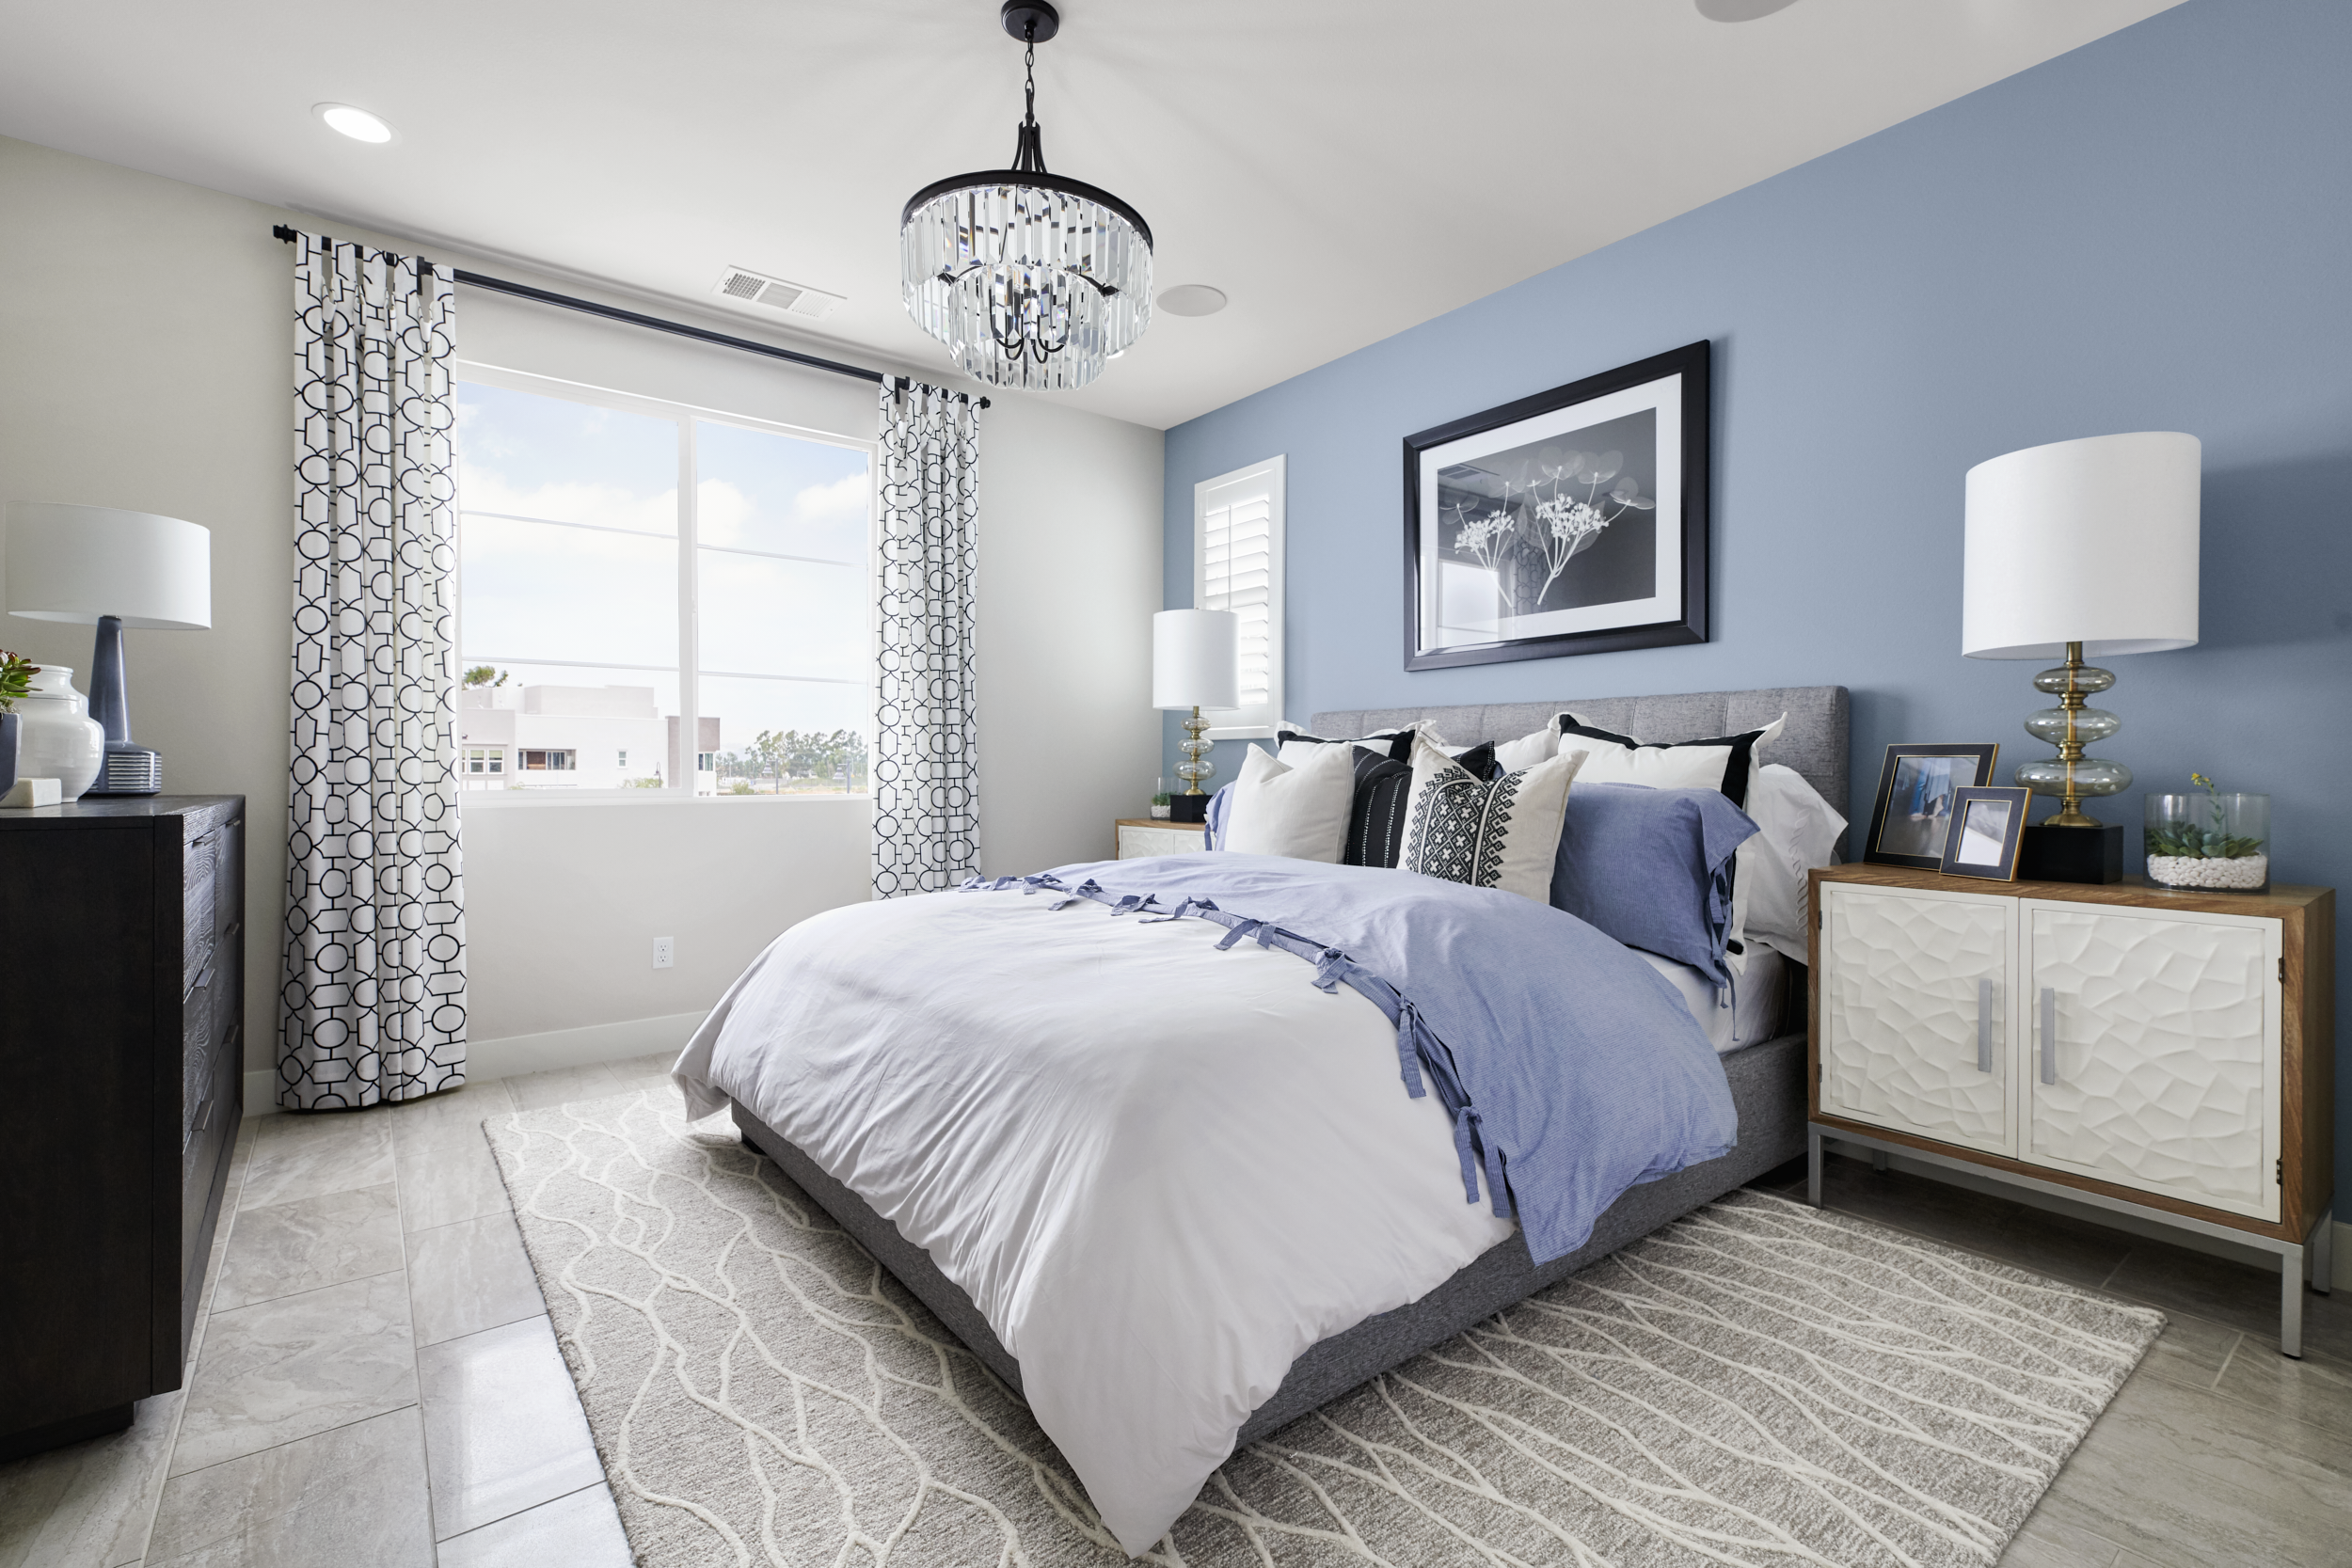 An accent paint on a bed wall is an effective way to add